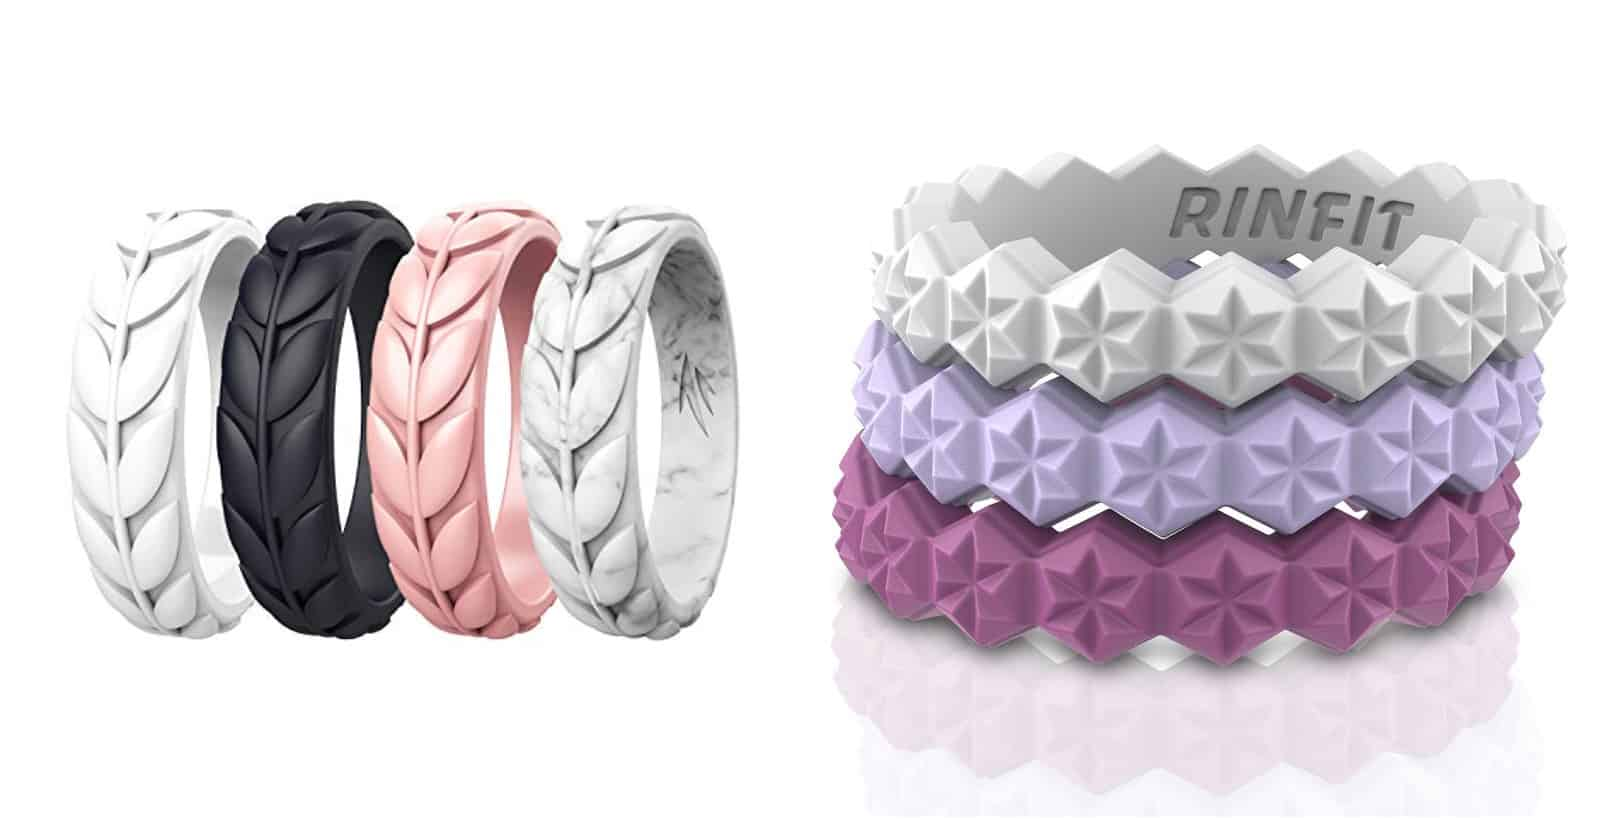 8 Rings // 4 Rings 2mm Thick Thin Silicone Wedding Rings 2.5mm Wide ThunderFit Womens Triangle Diamond Stackable Rings